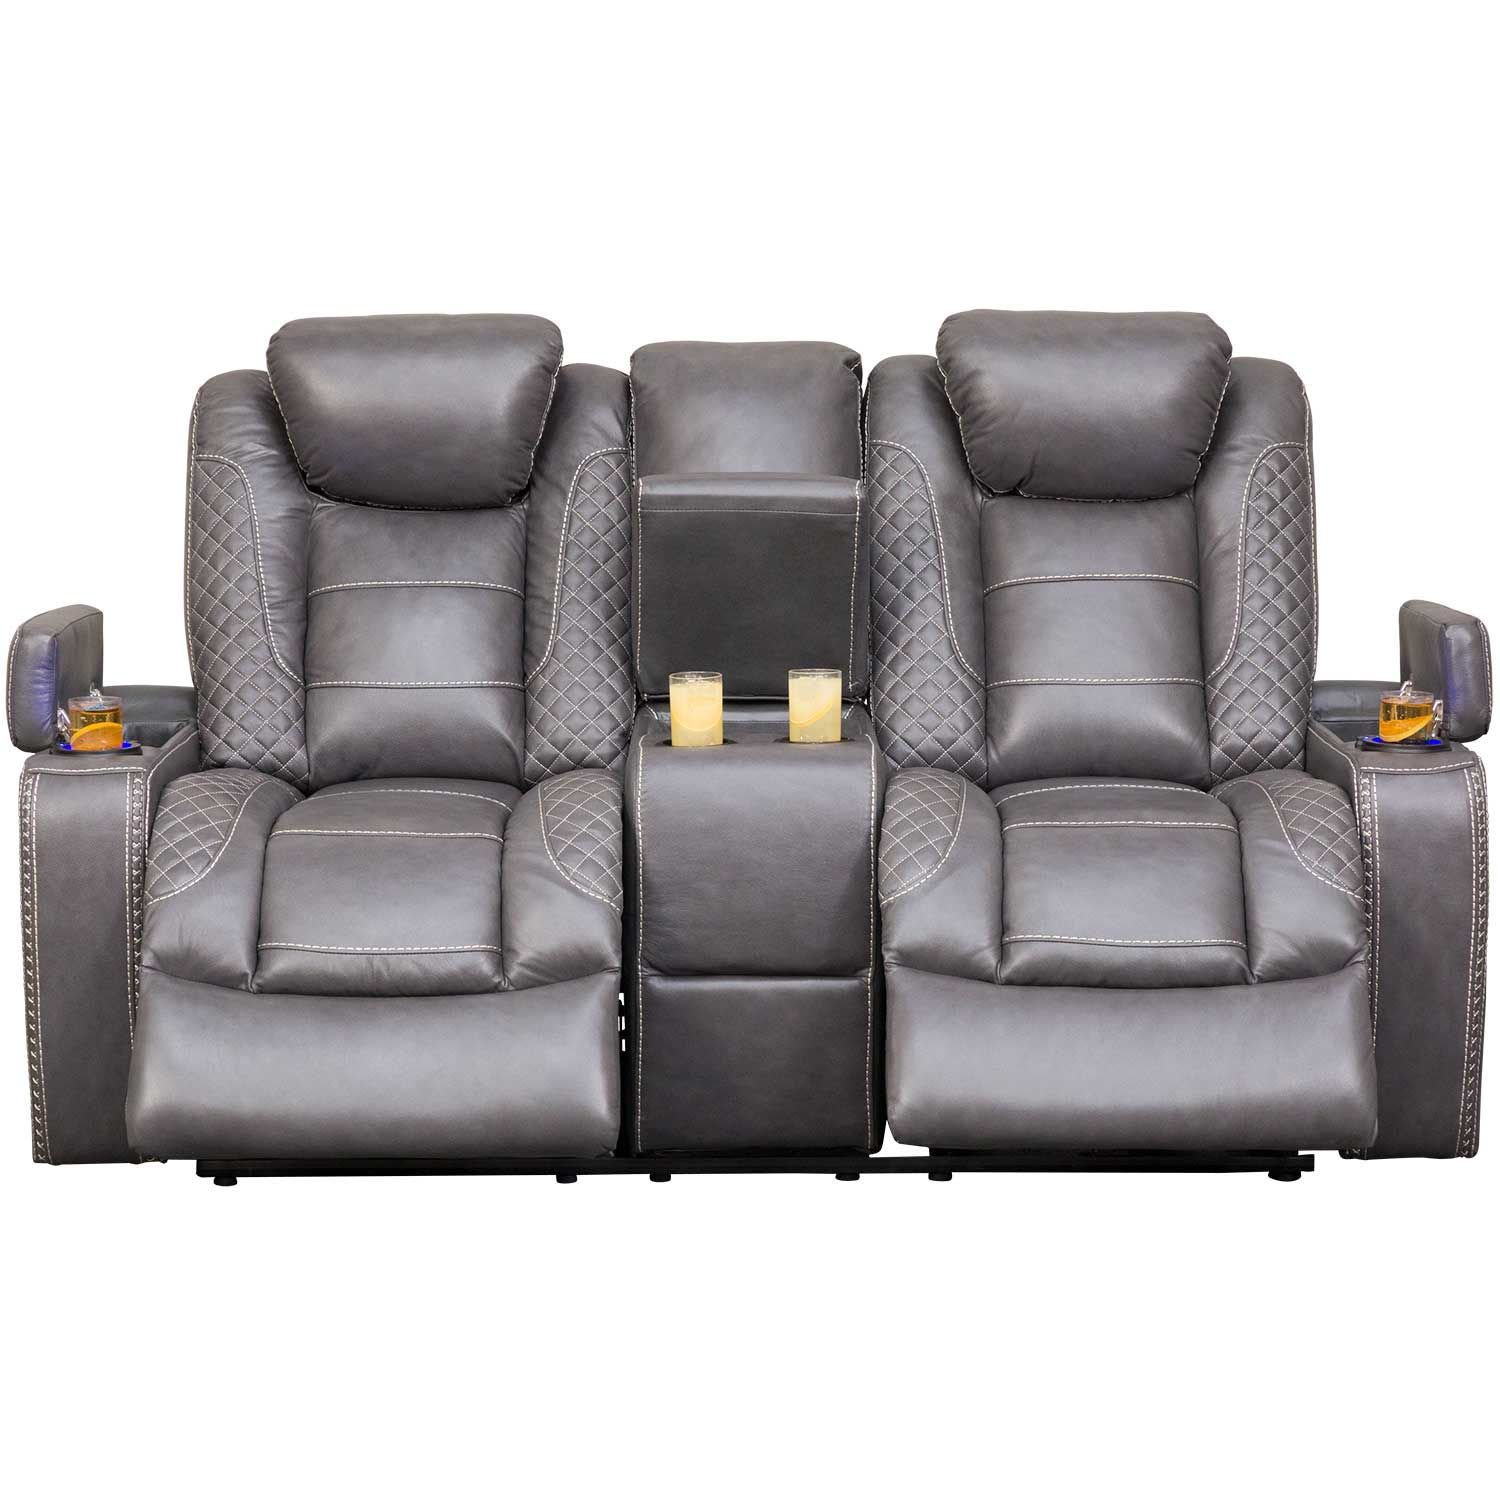 Picture of Orion Power Reclining Console Loveseat with Adjustable Headrest and Drop Down Table